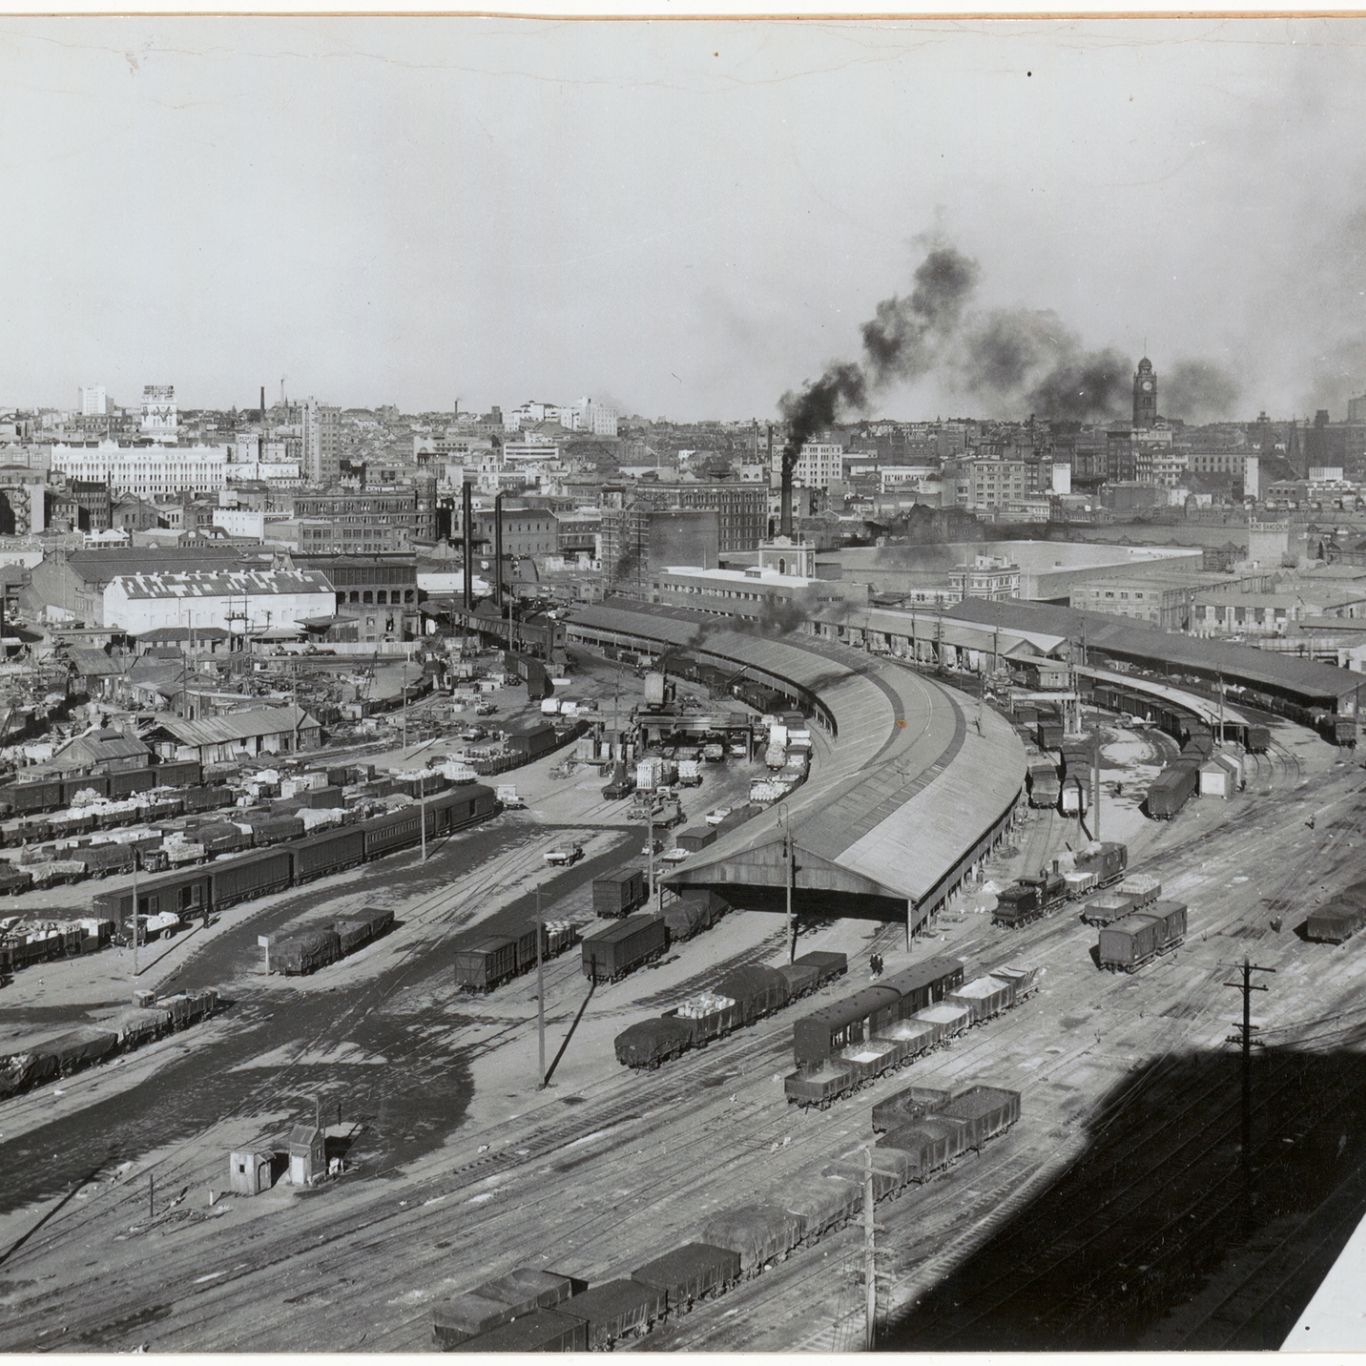 Black and white photograph looking across goods yard with smoke on horizon.